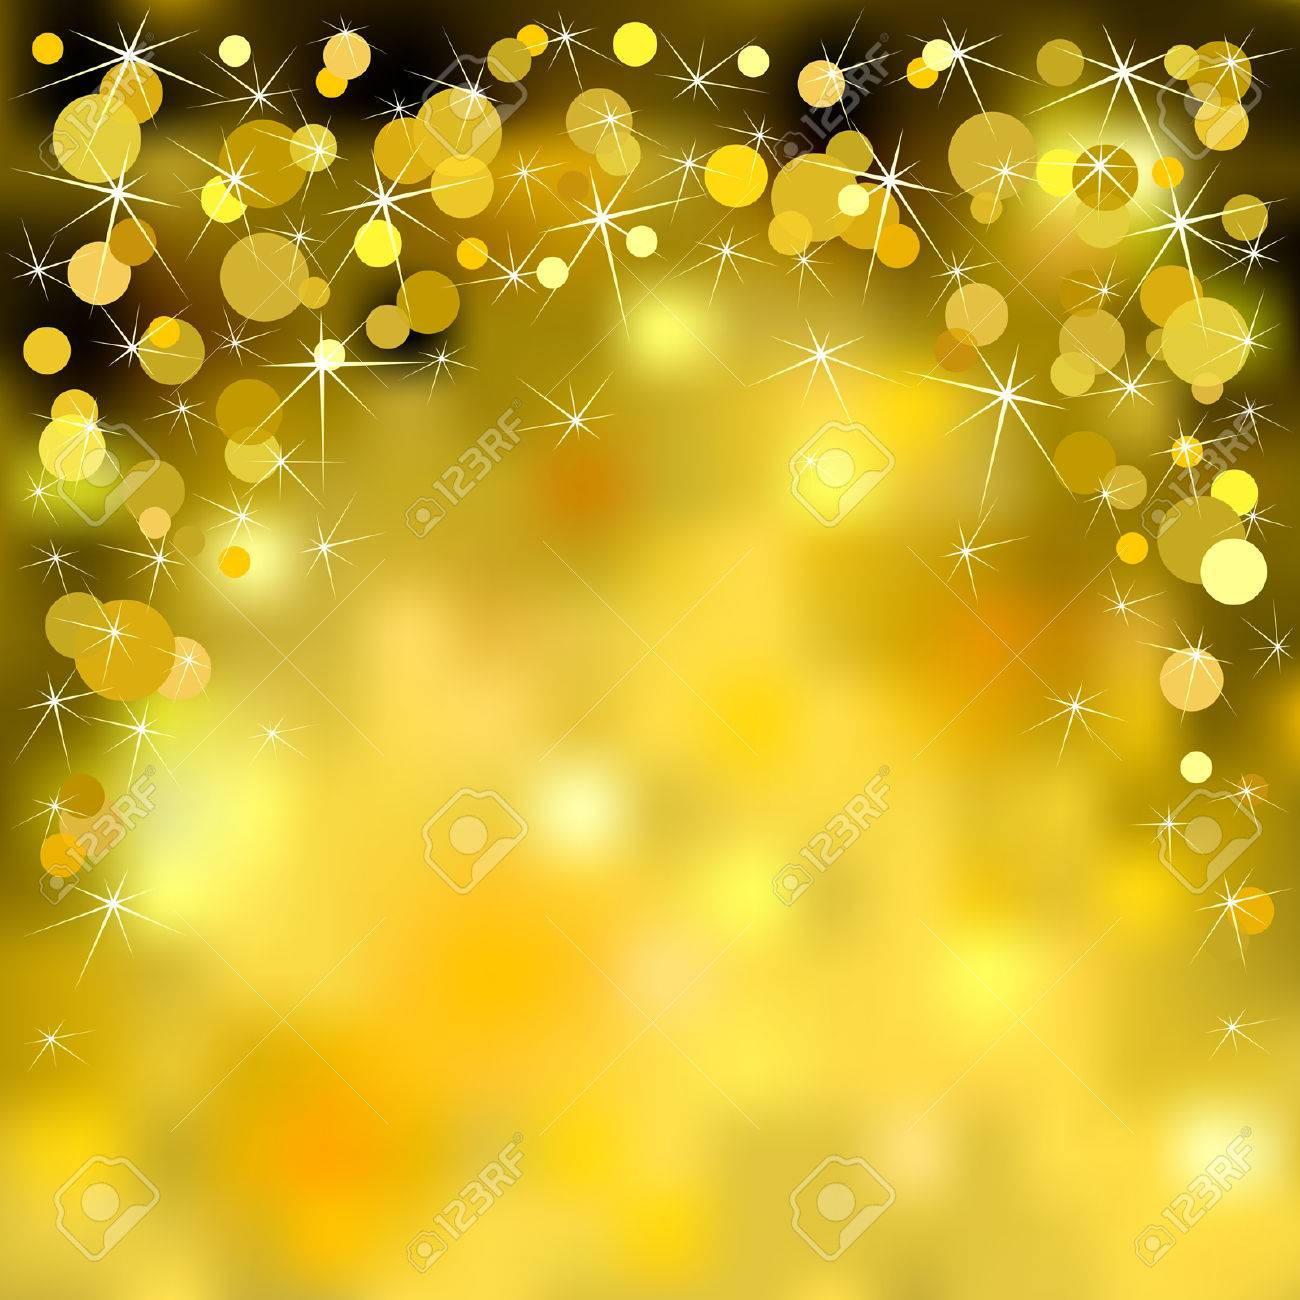 Gold Sparkles Clipart Christmas Gold Sparkle Shiny